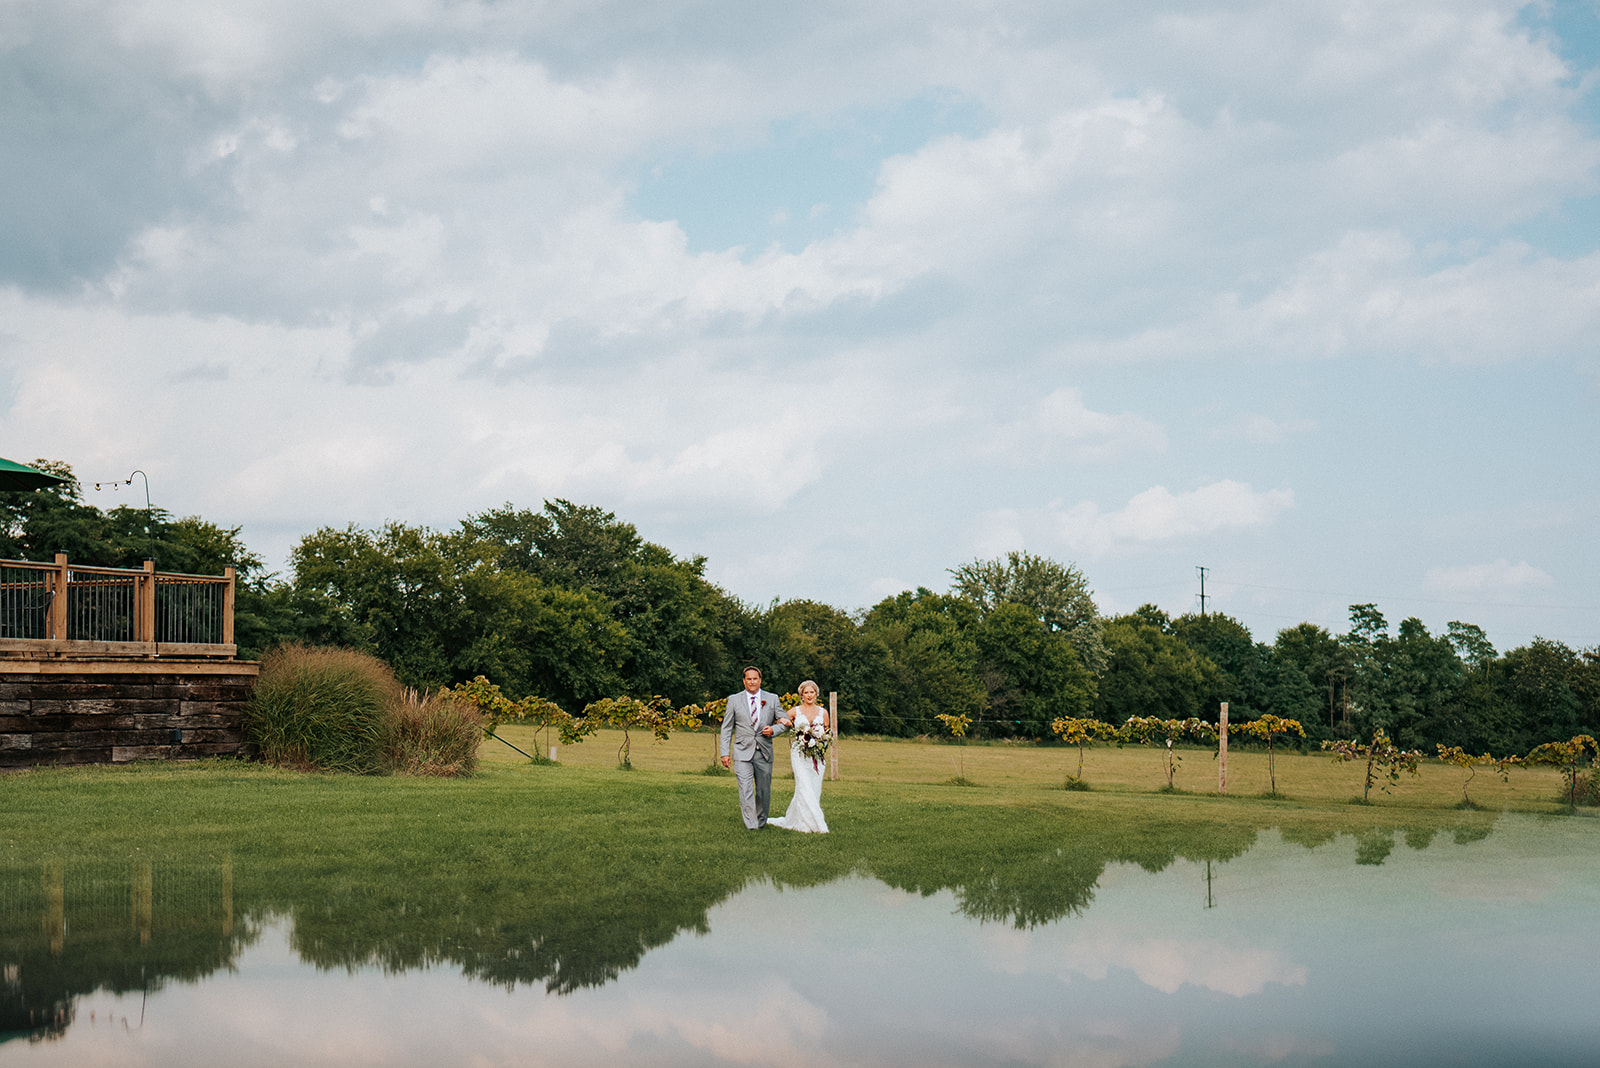 overthevineswisconsinwedding_0603.jpg